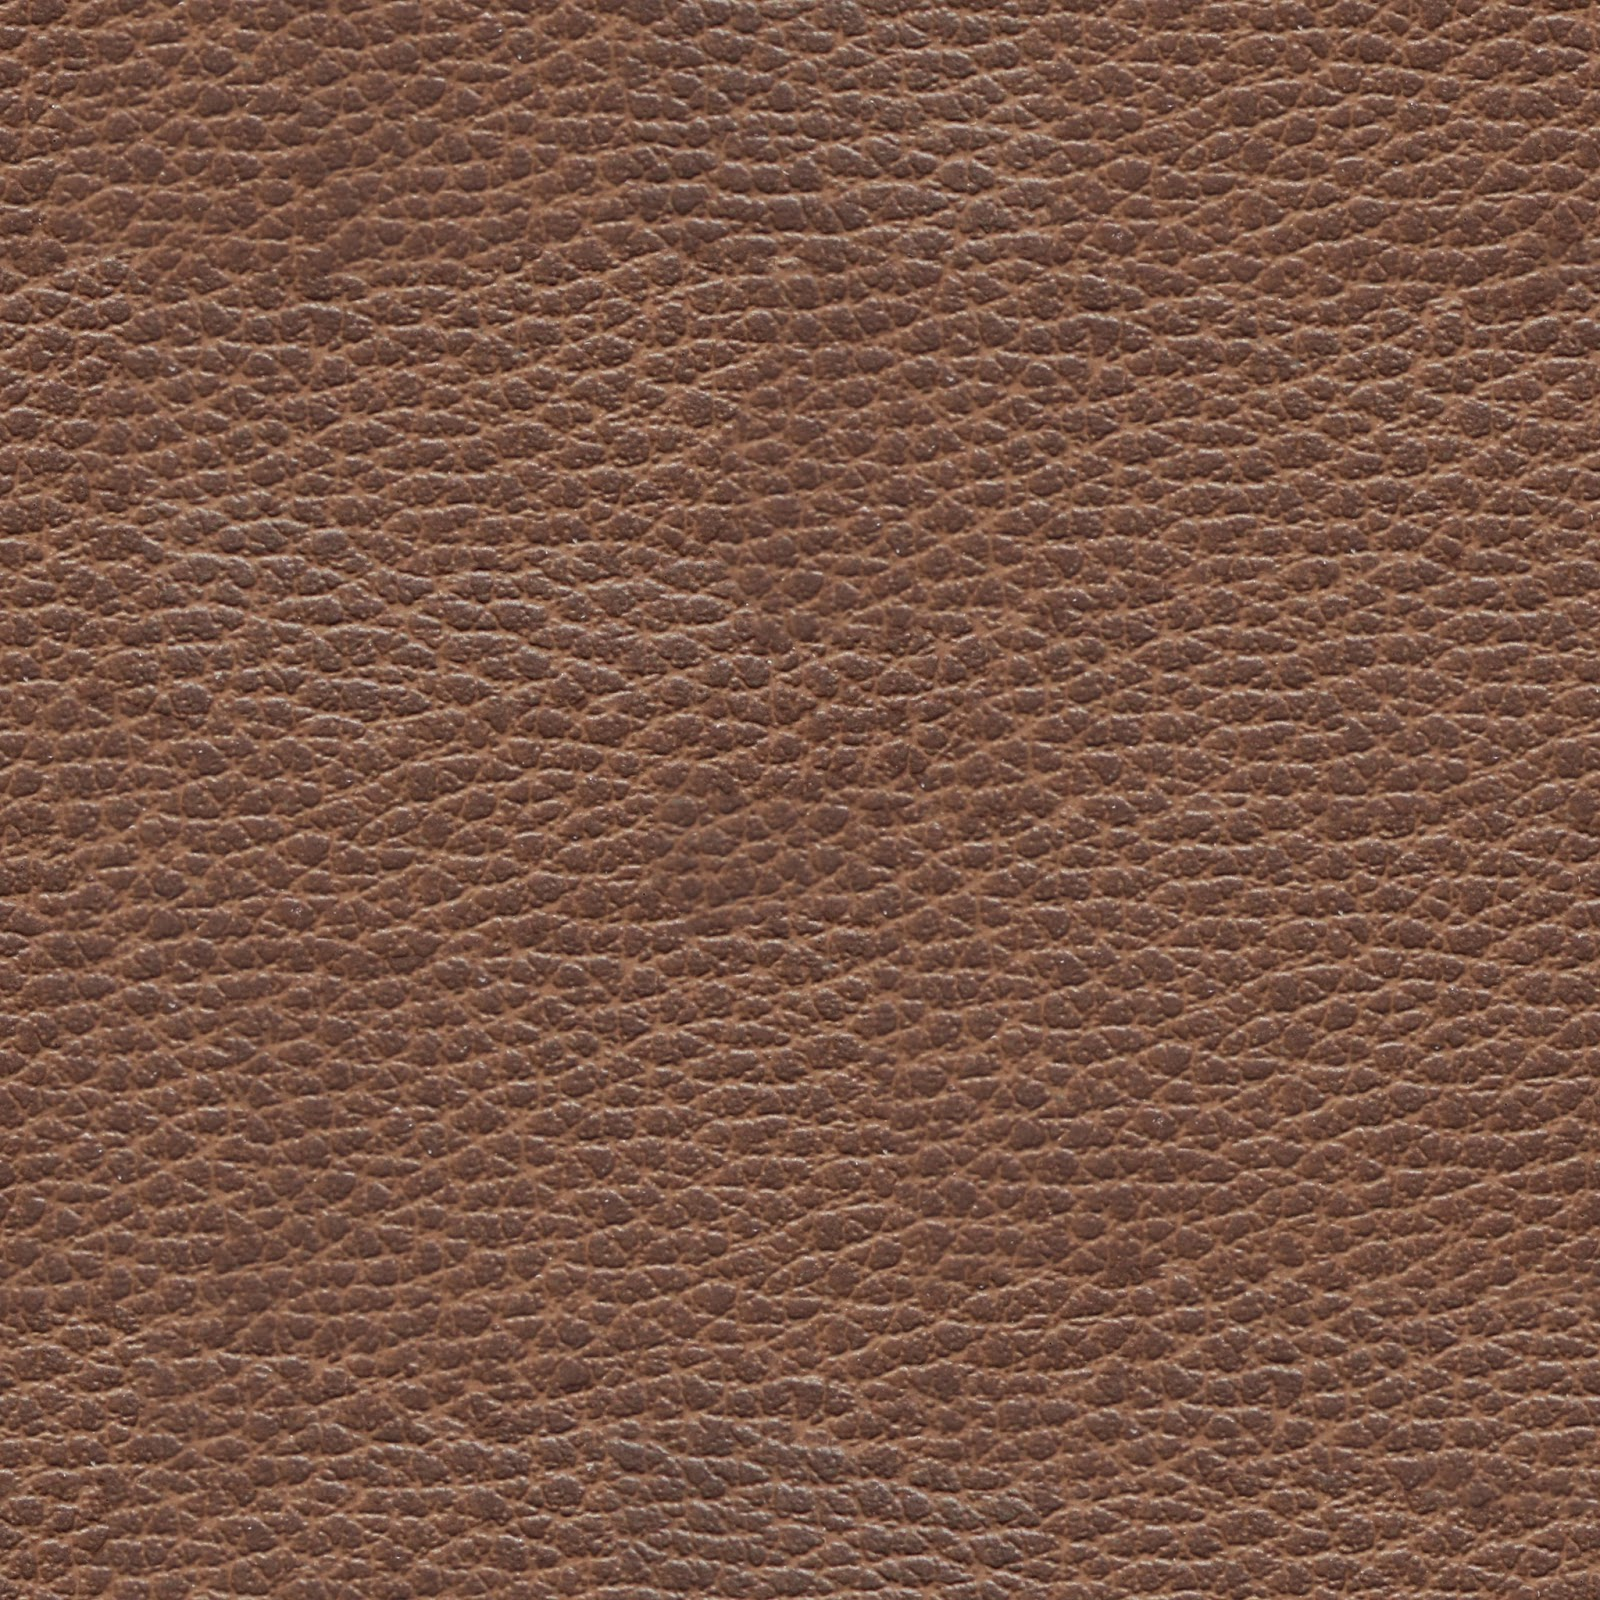 Leather Textures clipart tileable Textures you If with Seamless